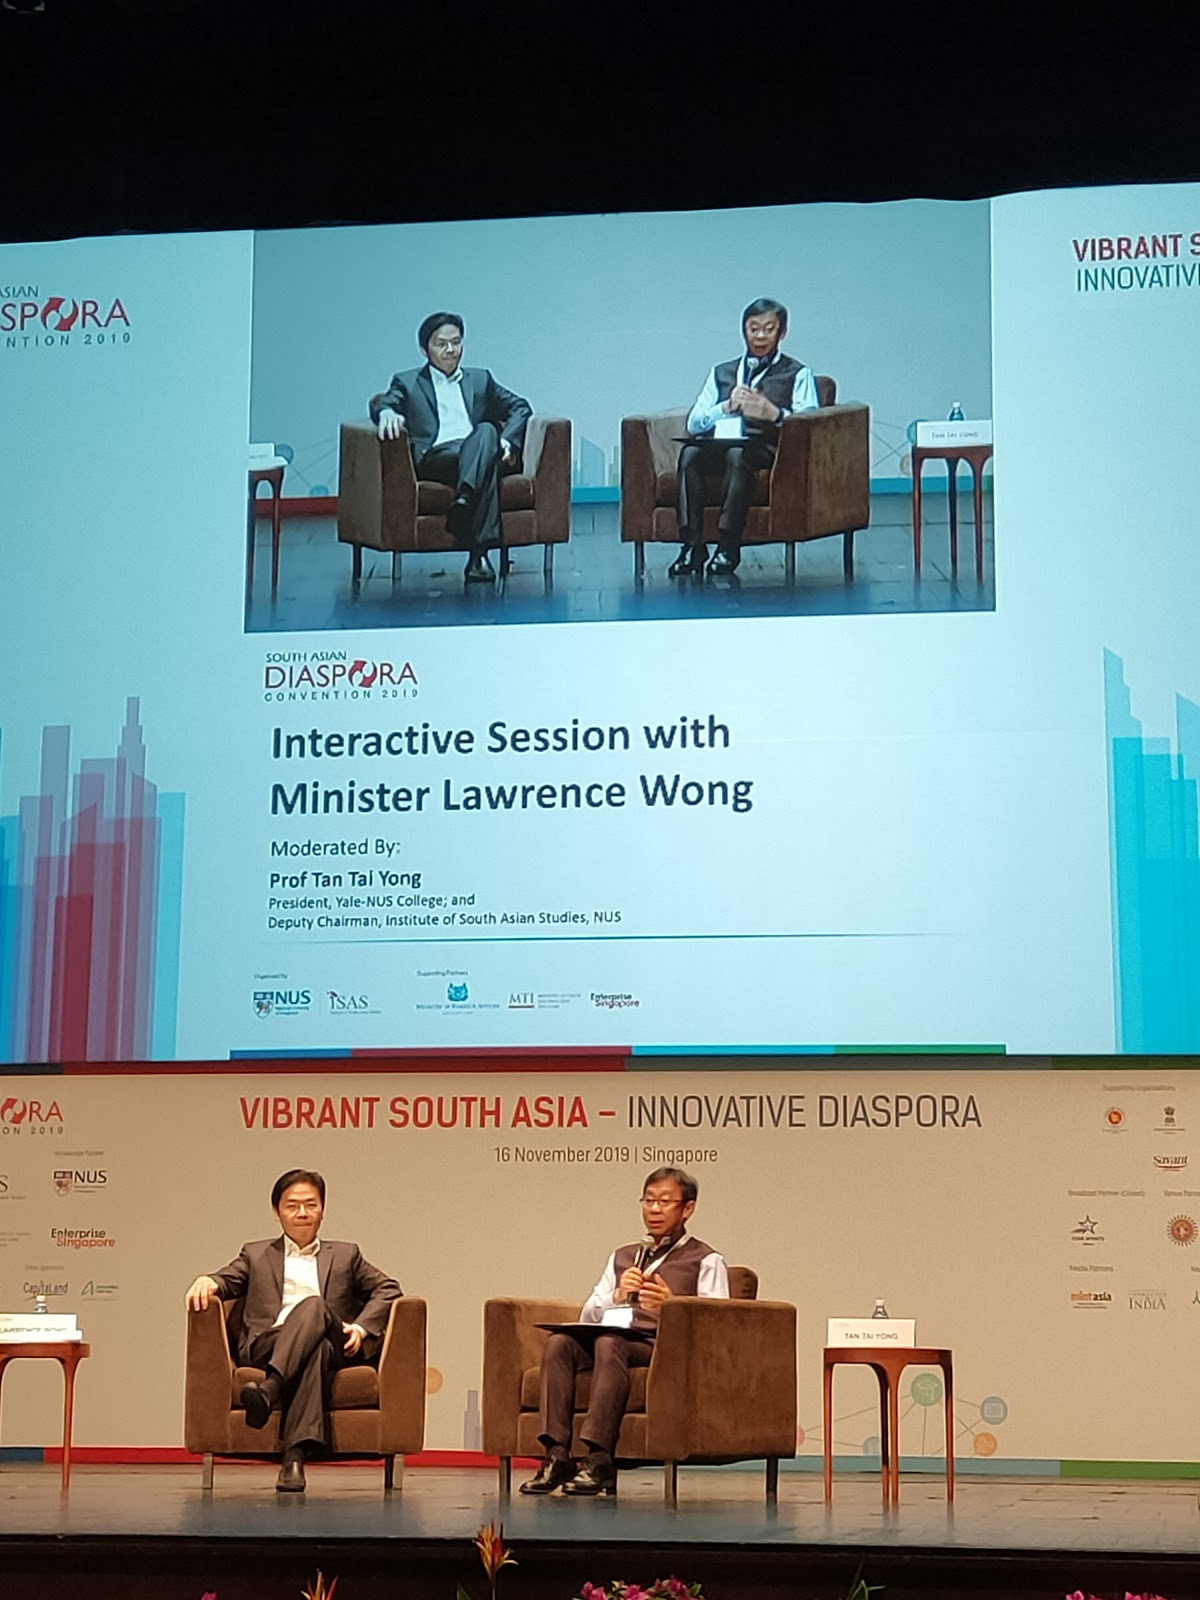 Lawrence Wong, Minister for National Development and Second Minister for Finance responded to questions posed by the audience in an interactive session moderated by Professor Tan Tai Yong, President Yale-NUS College and Deputy Chairman, ISAS. Photo: Connected to India